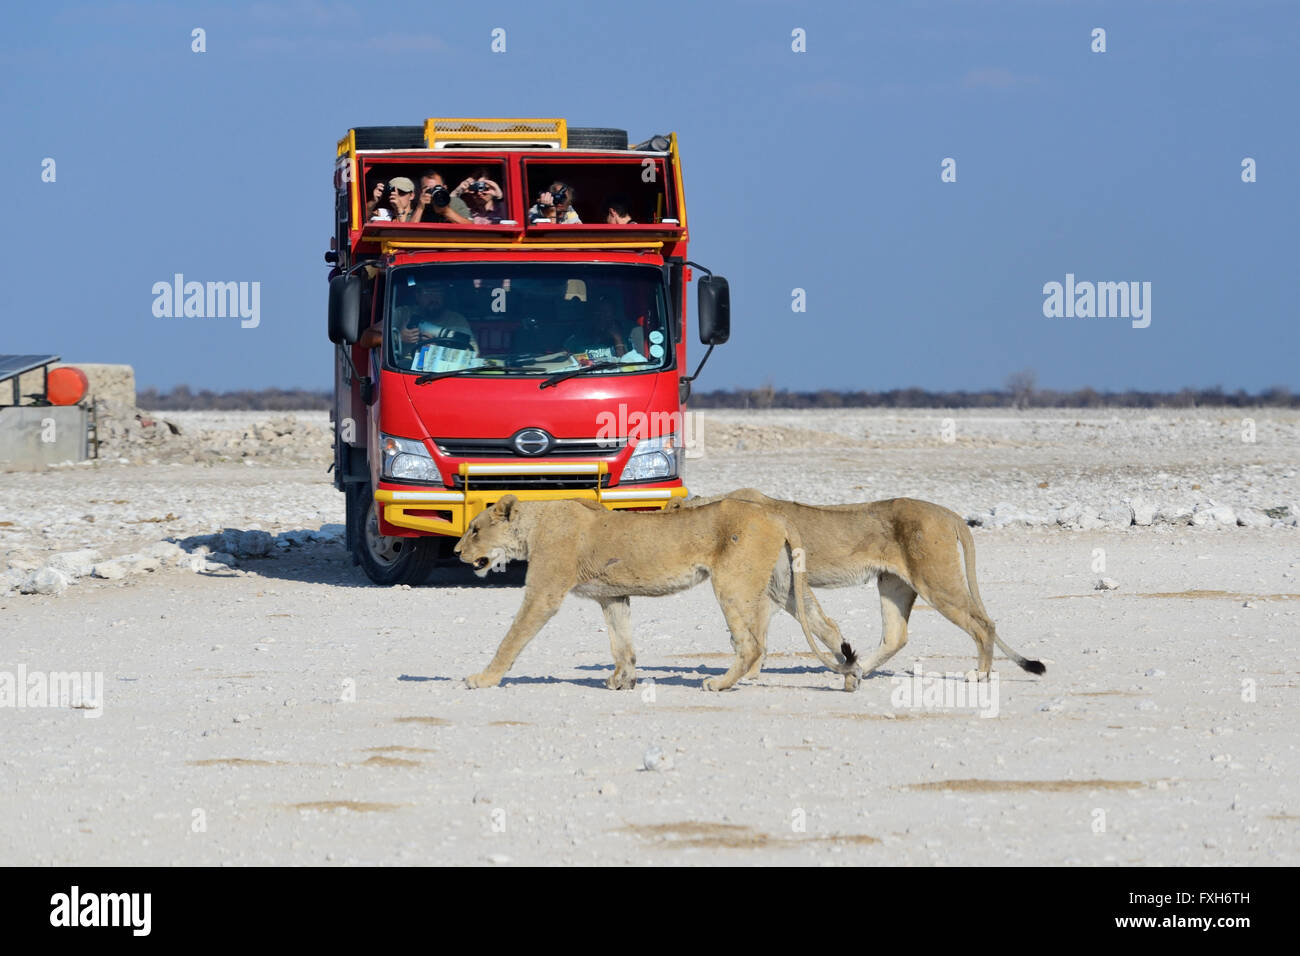 Female lions (Panthera leo) crossing road watched by safari vehicle in Etosha National Park, Namibia - Stock Image